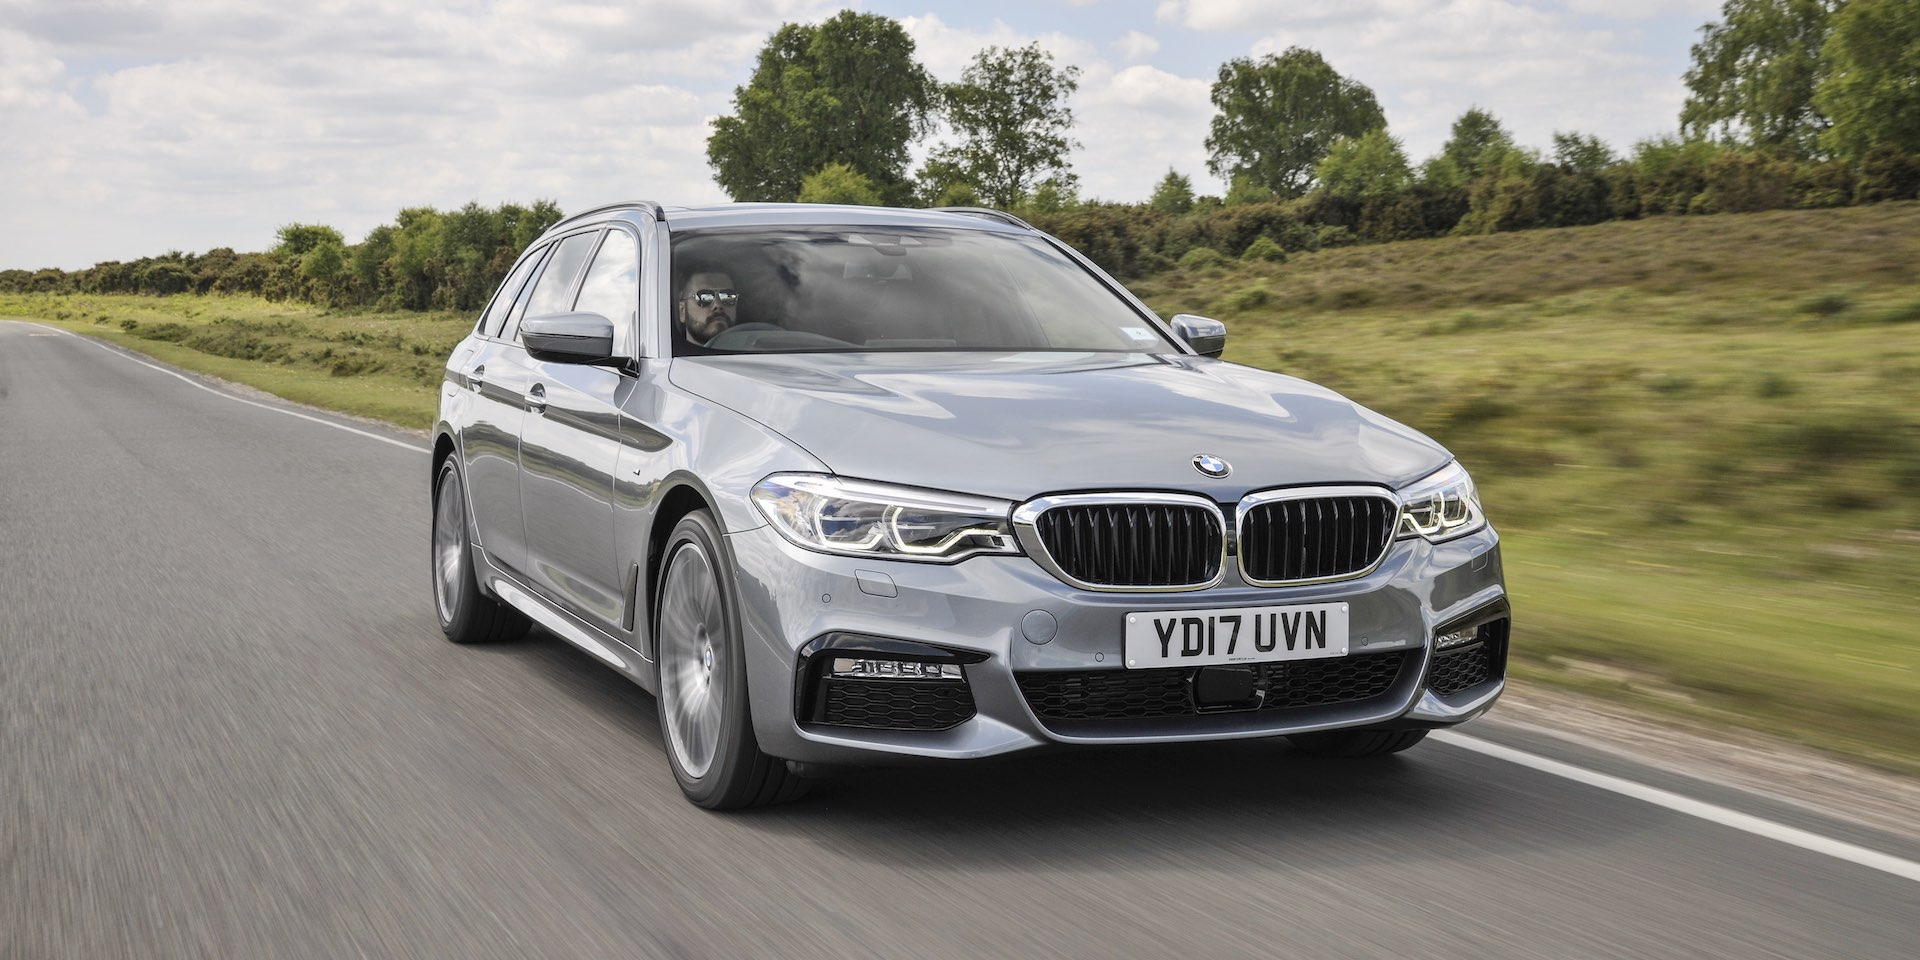 2019 Bmw 530i Touring Test Drive New Car Reviews The Car Expert